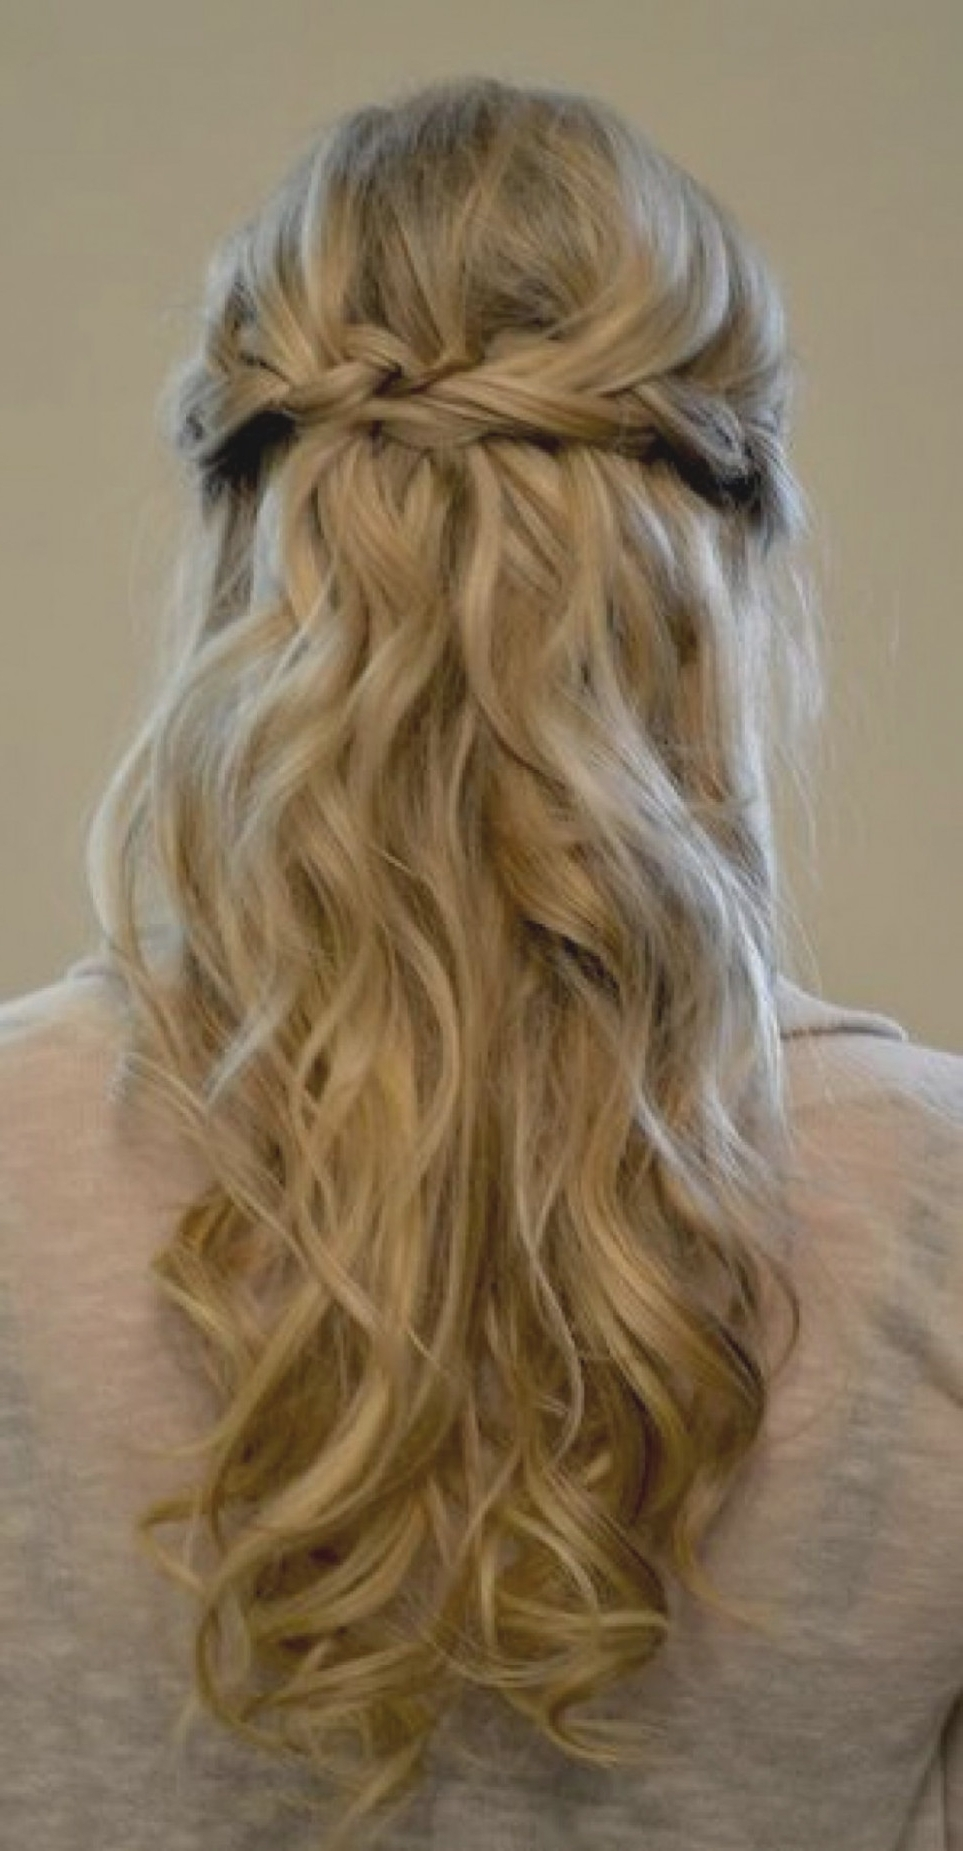 Most Popular Formal Half Ponytail Hairstyles Inside Simple Braided Prom Half Updo Hairstyle For Long Hair – Popular (View 13 of 20)